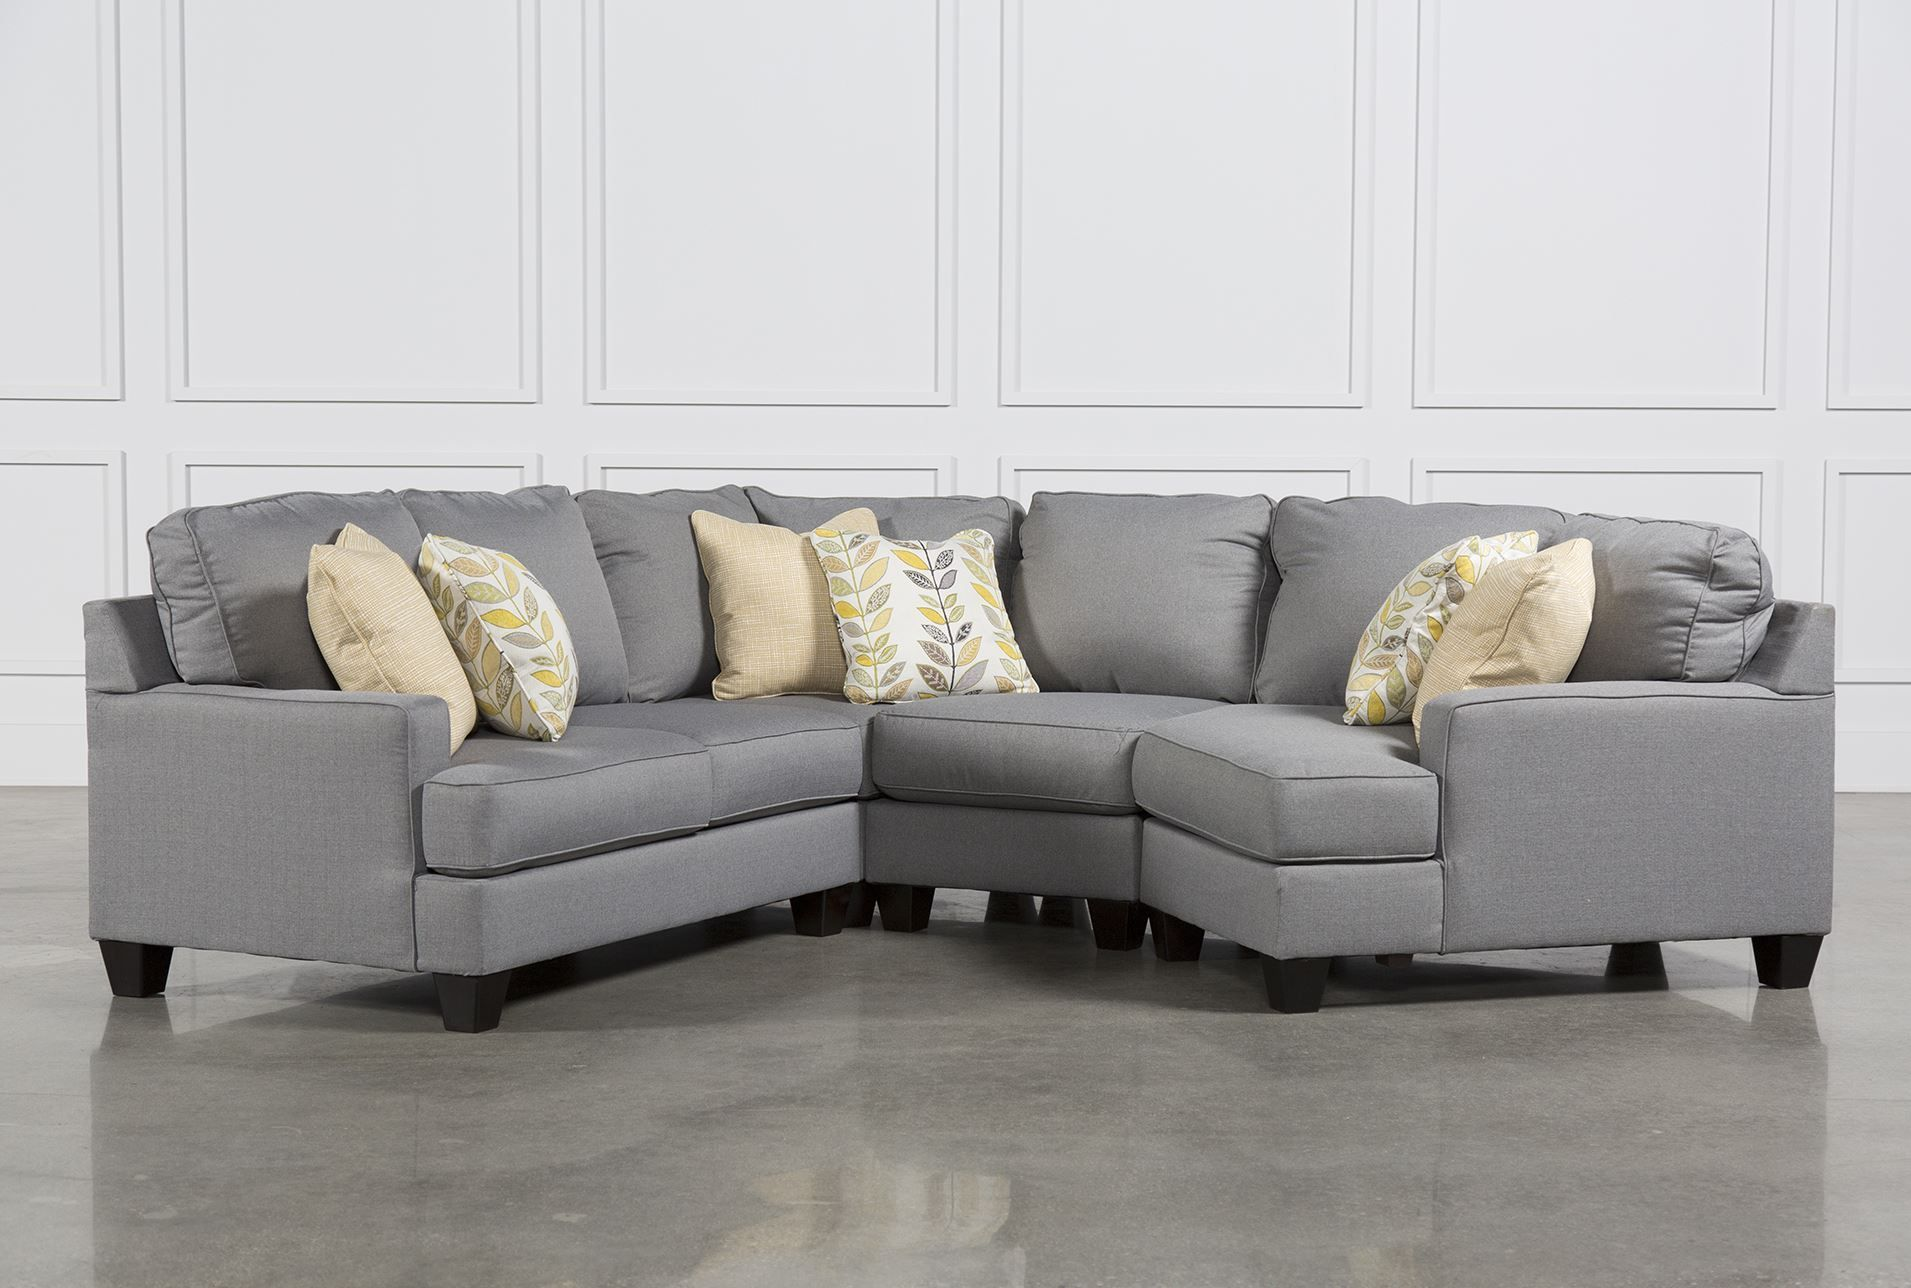 Chamberly 4 Piece Sectional W Raf Cuddler Sectional Sofa With Chaise Sectional Sofa Blue And White Living Room